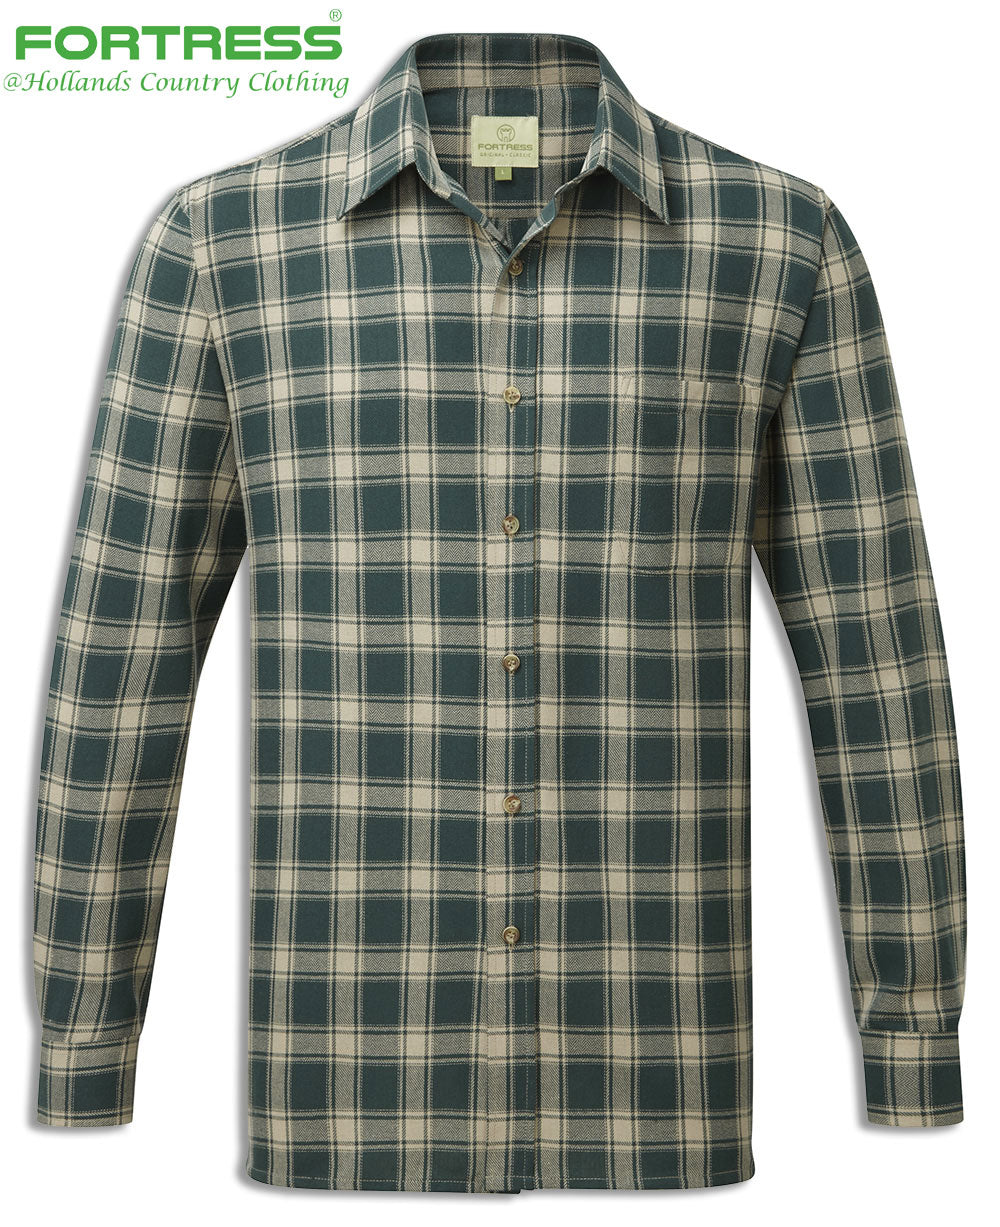 green Fortress Worcester Work Shirt green blue tartan check pattern